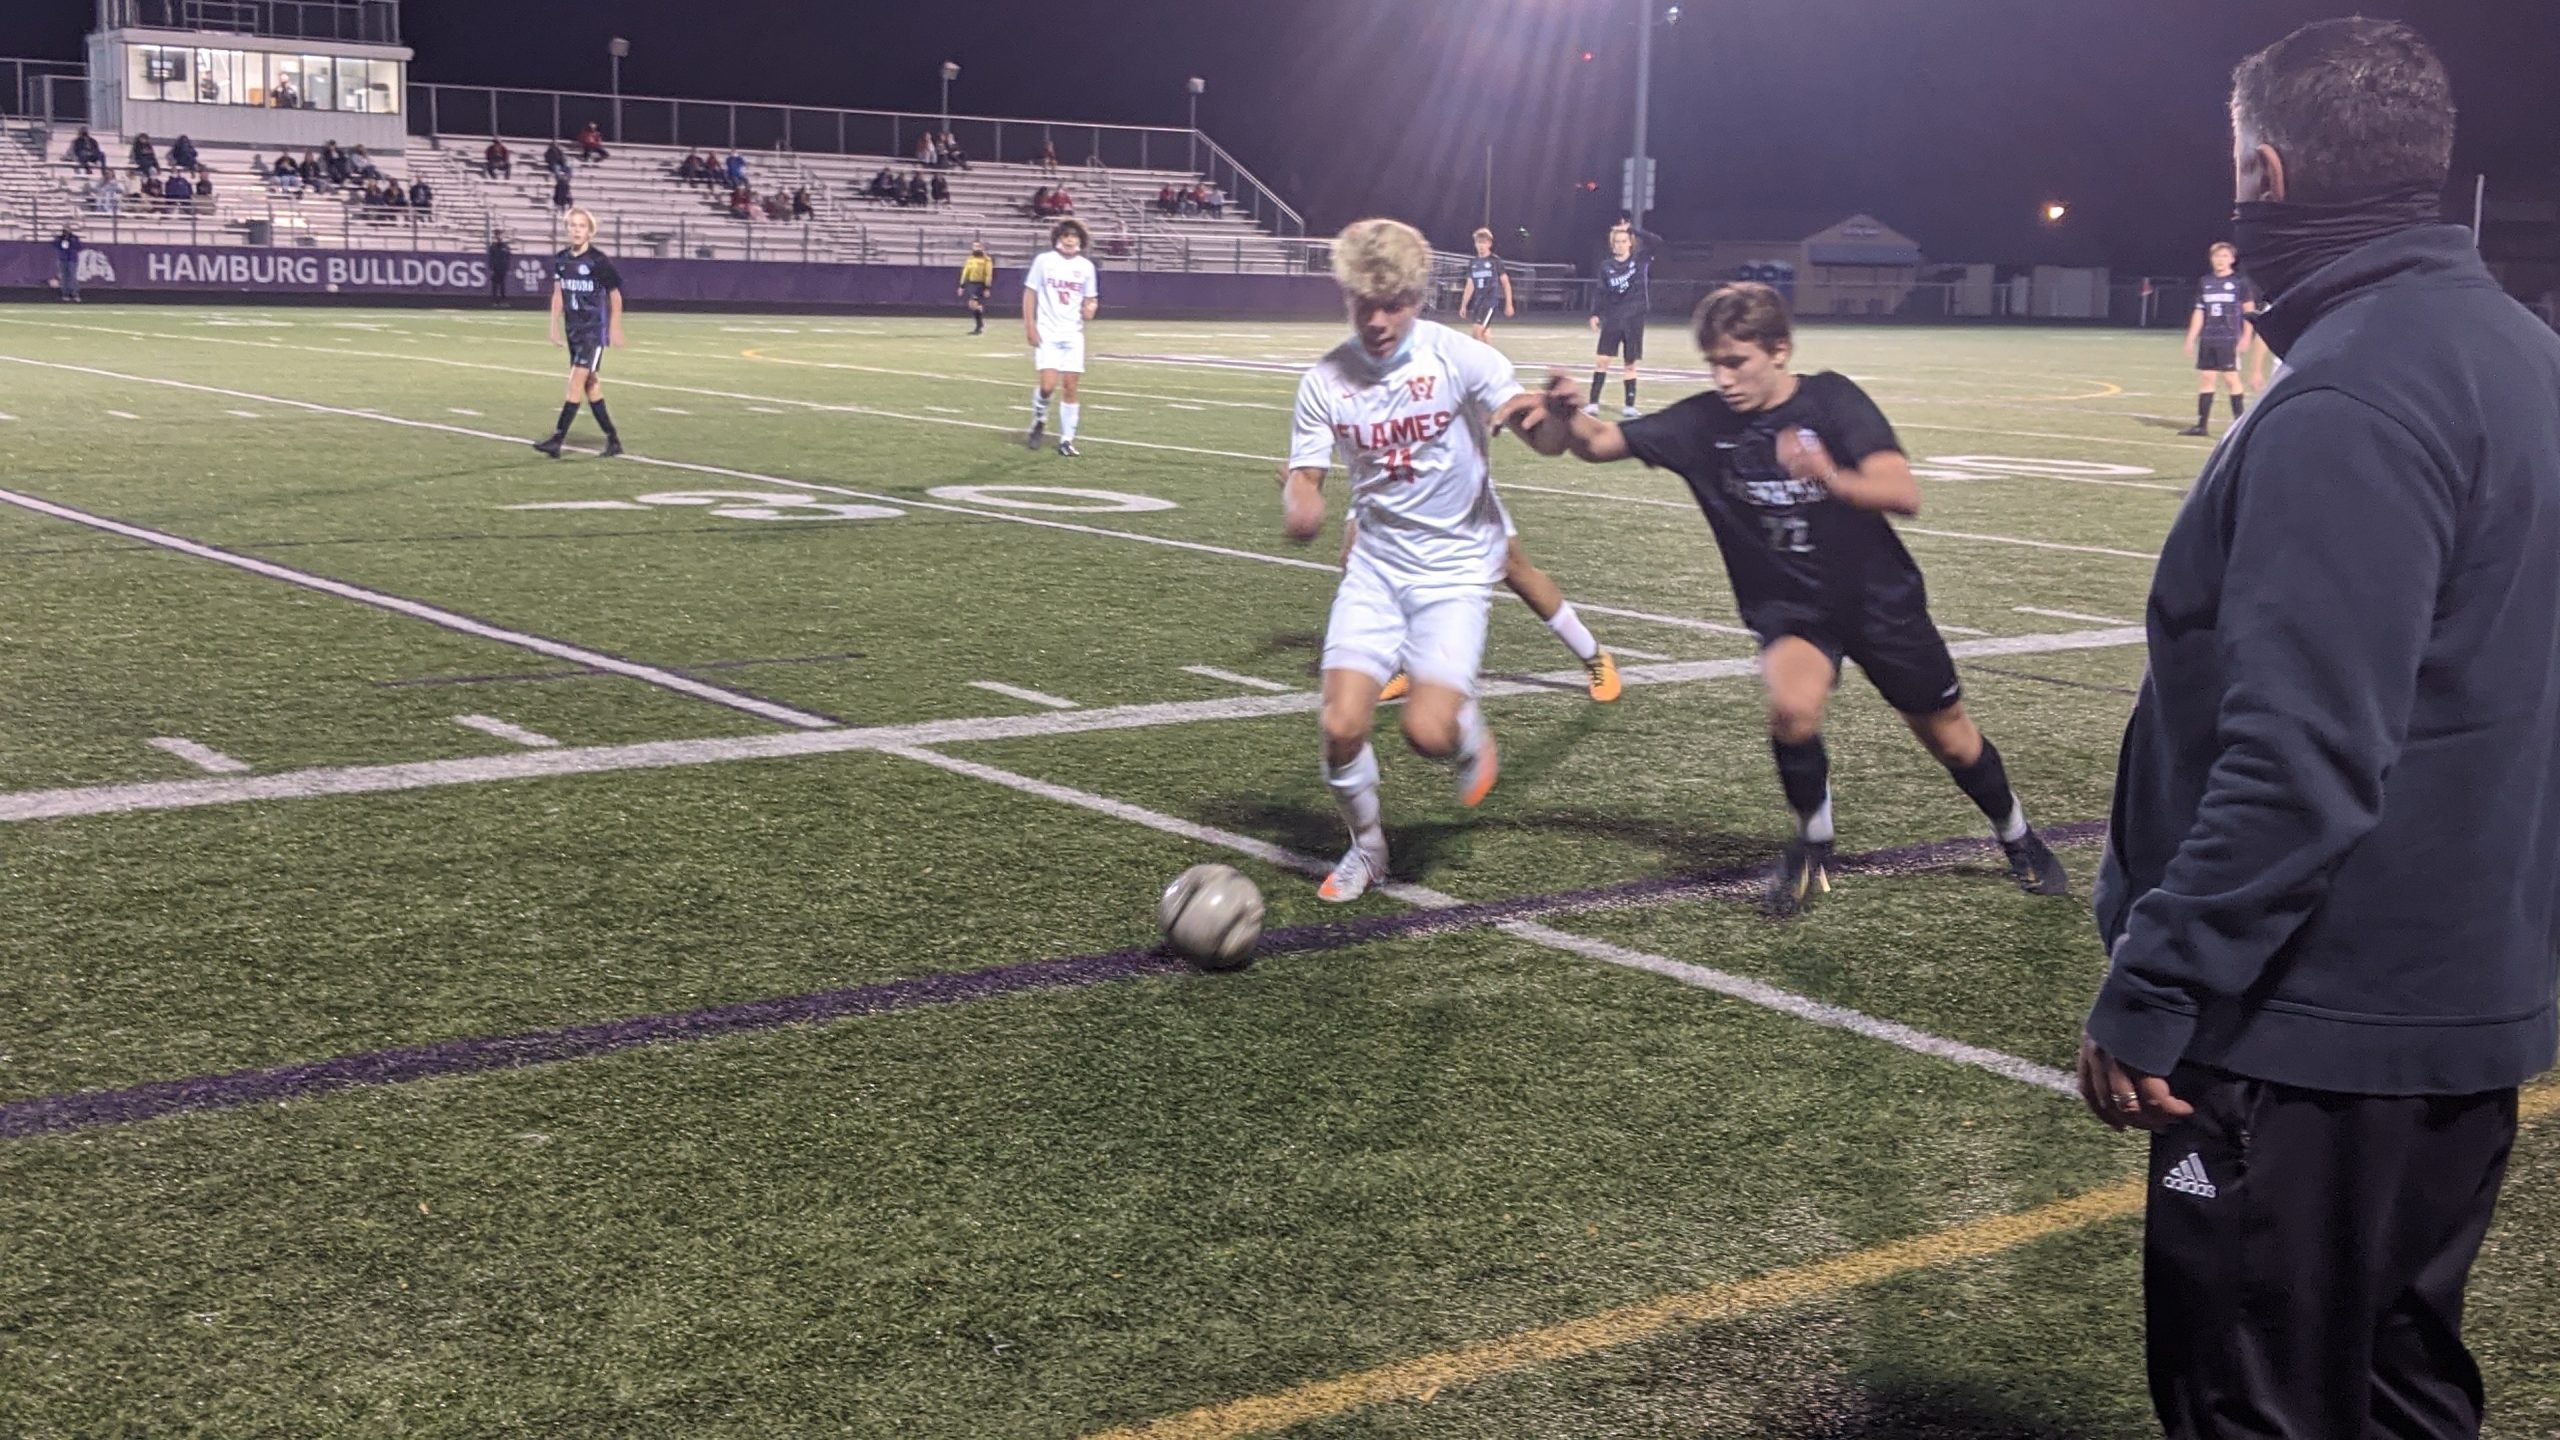 Will East Edges Hamburg to Remain Undefeated